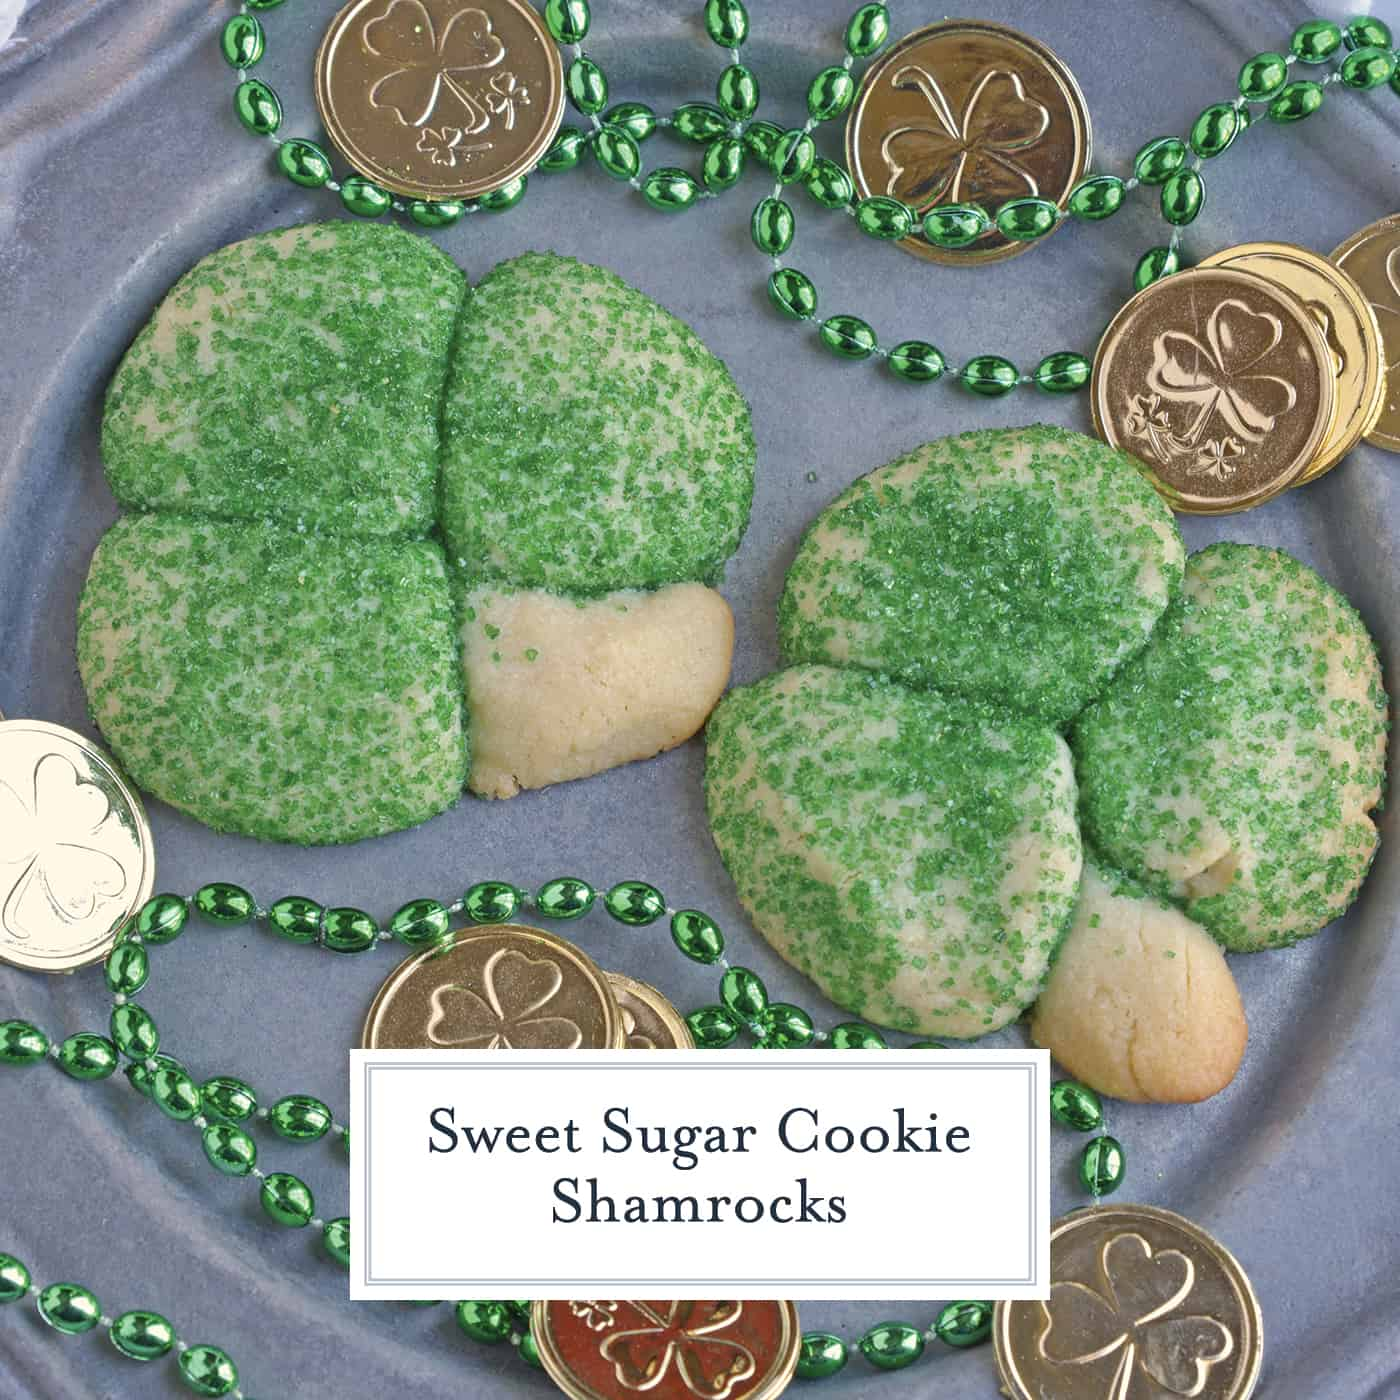 Sugar Cookie Shamrocks bring the luck of the Irish with them. St. Patrick's Day cookies creatively molded to make green lucky clovers, a great St. Patrick's Day dessert recipe. #stpatricksdayfood #stpatricksdaydessert www.savoryexperiments.com